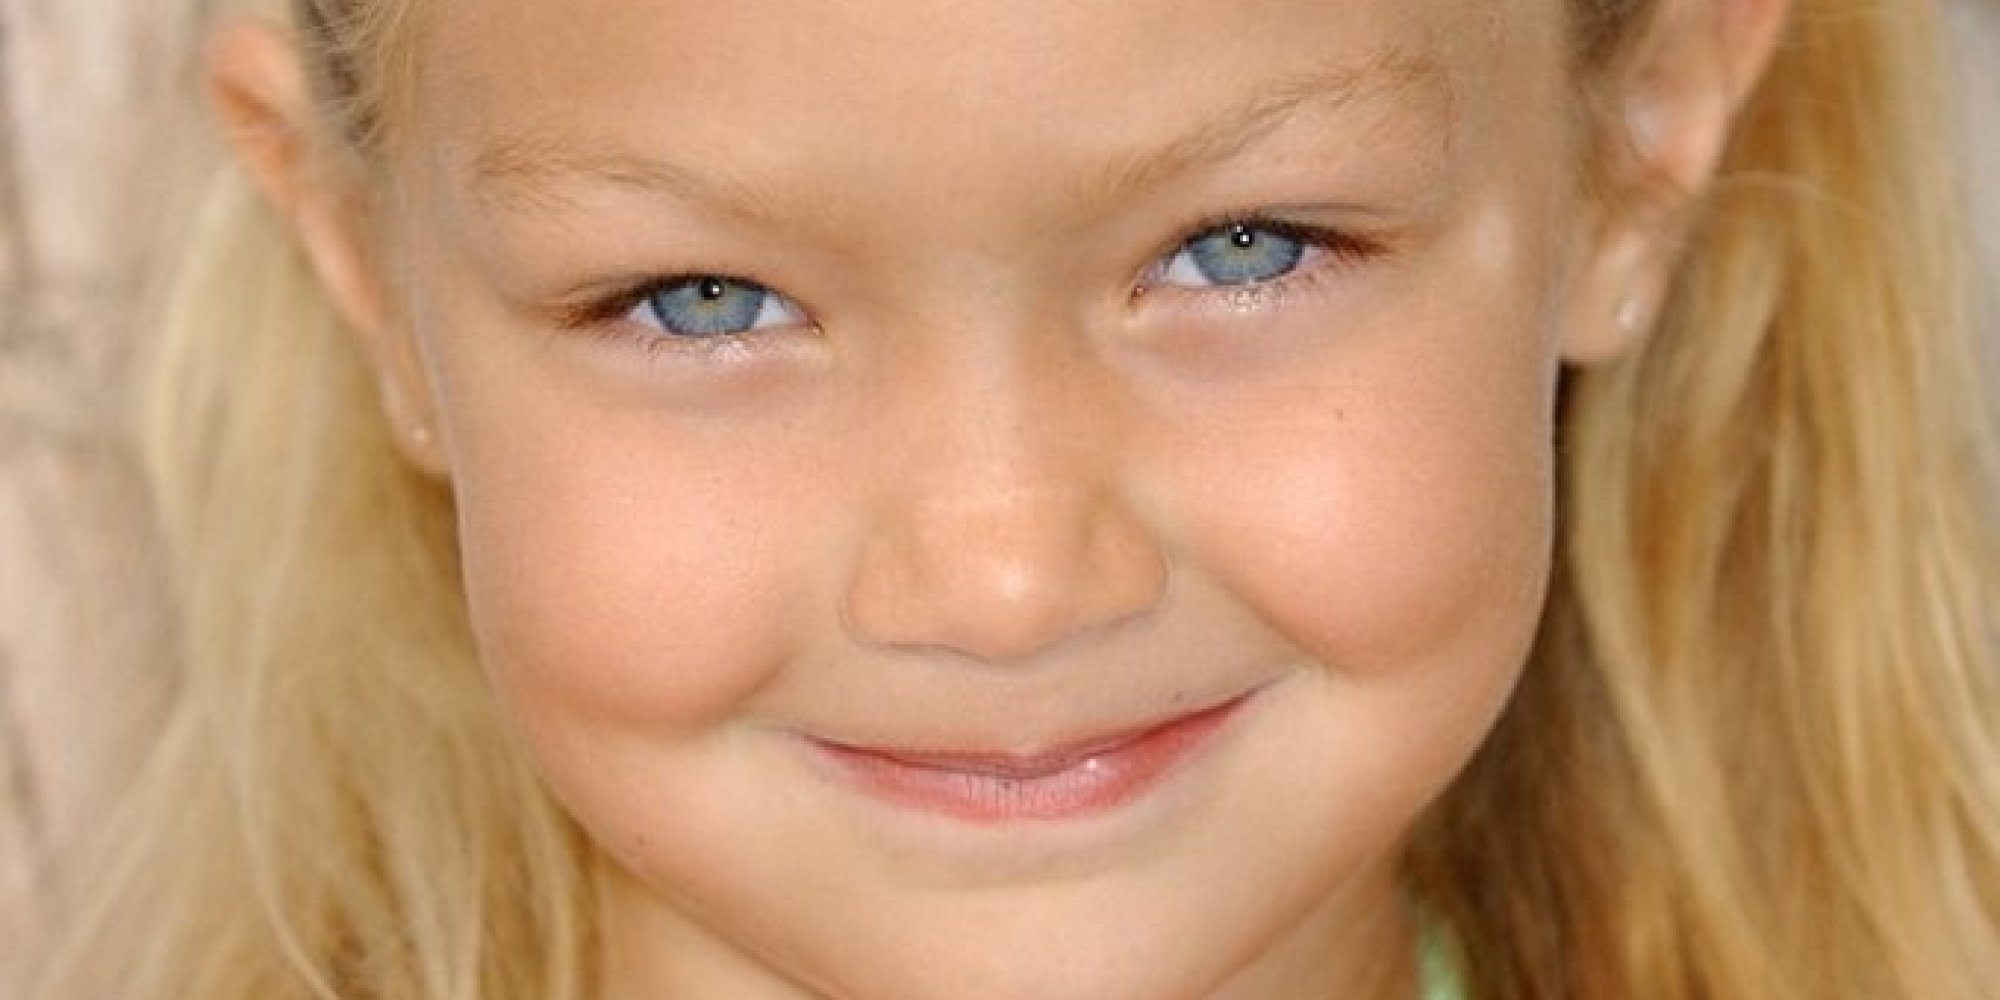 childhood photos of gigi hadid prove she was the cutest thing ever huffpost. Black Bedroom Furniture Sets. Home Design Ideas